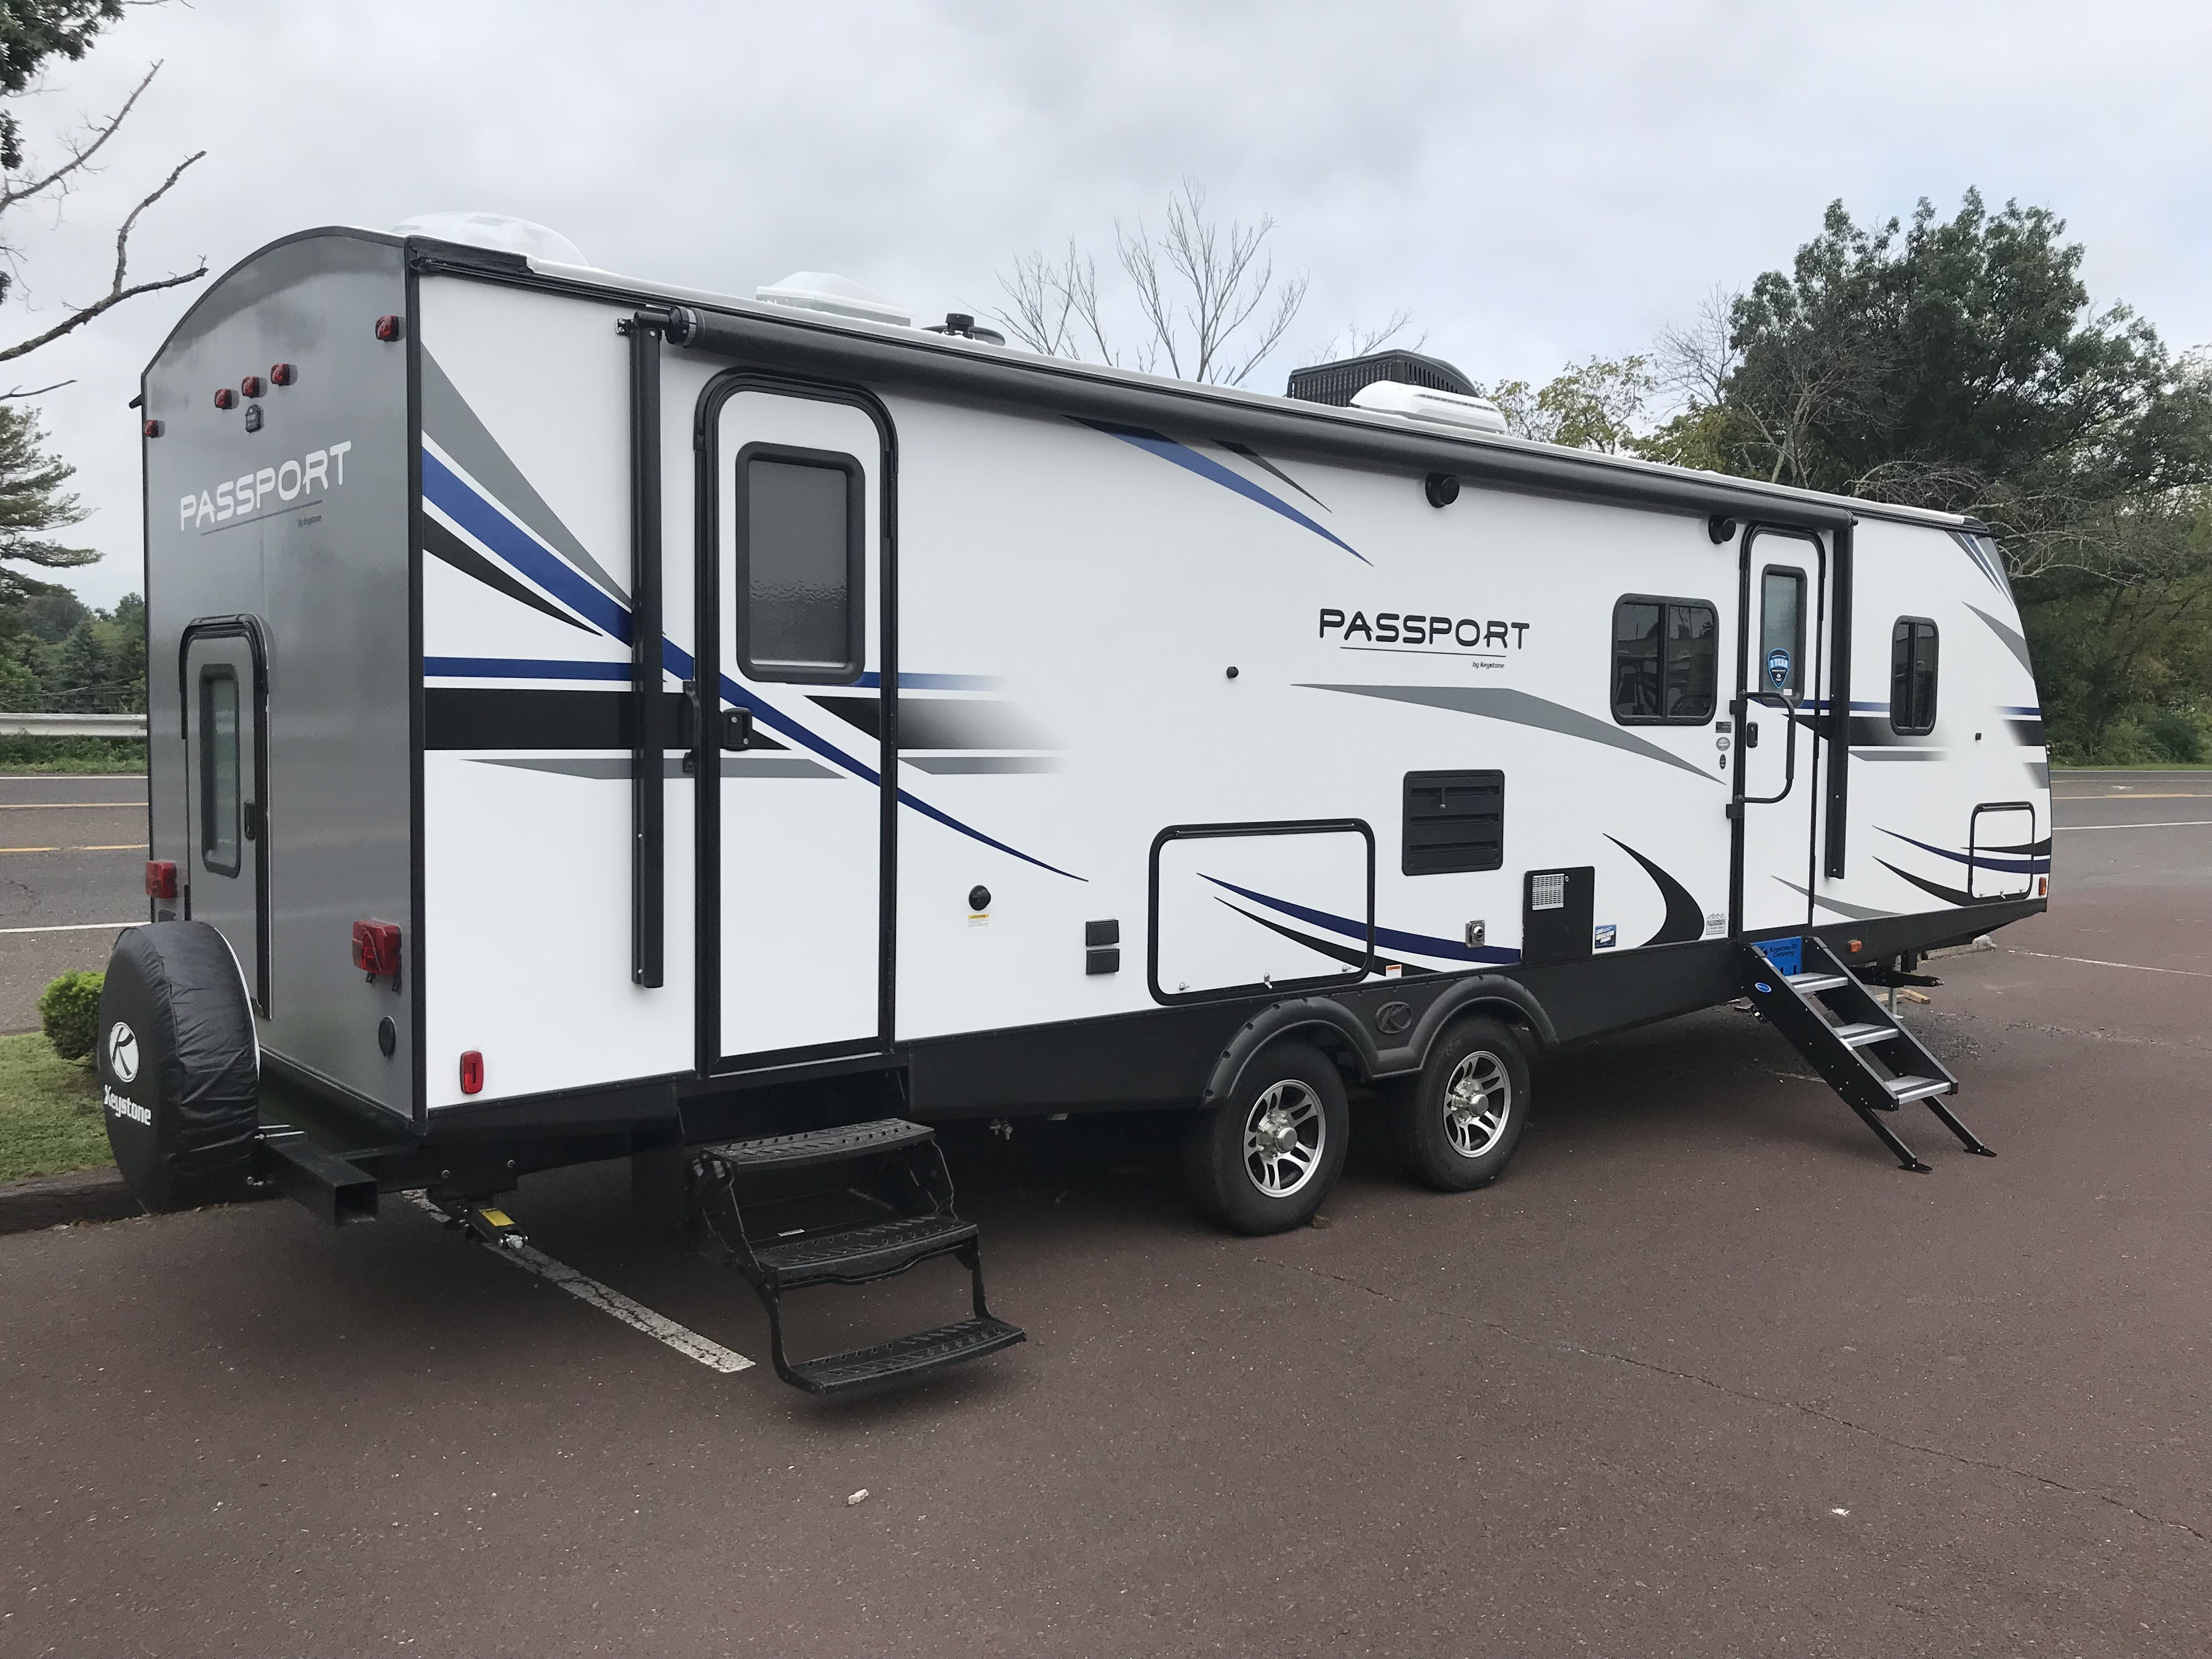 Pa Keystone Passport Gt 2950 Rvs For Sale 2 Rv Trader Equalizer Weight Distribution W 4point Sway Control No Shank